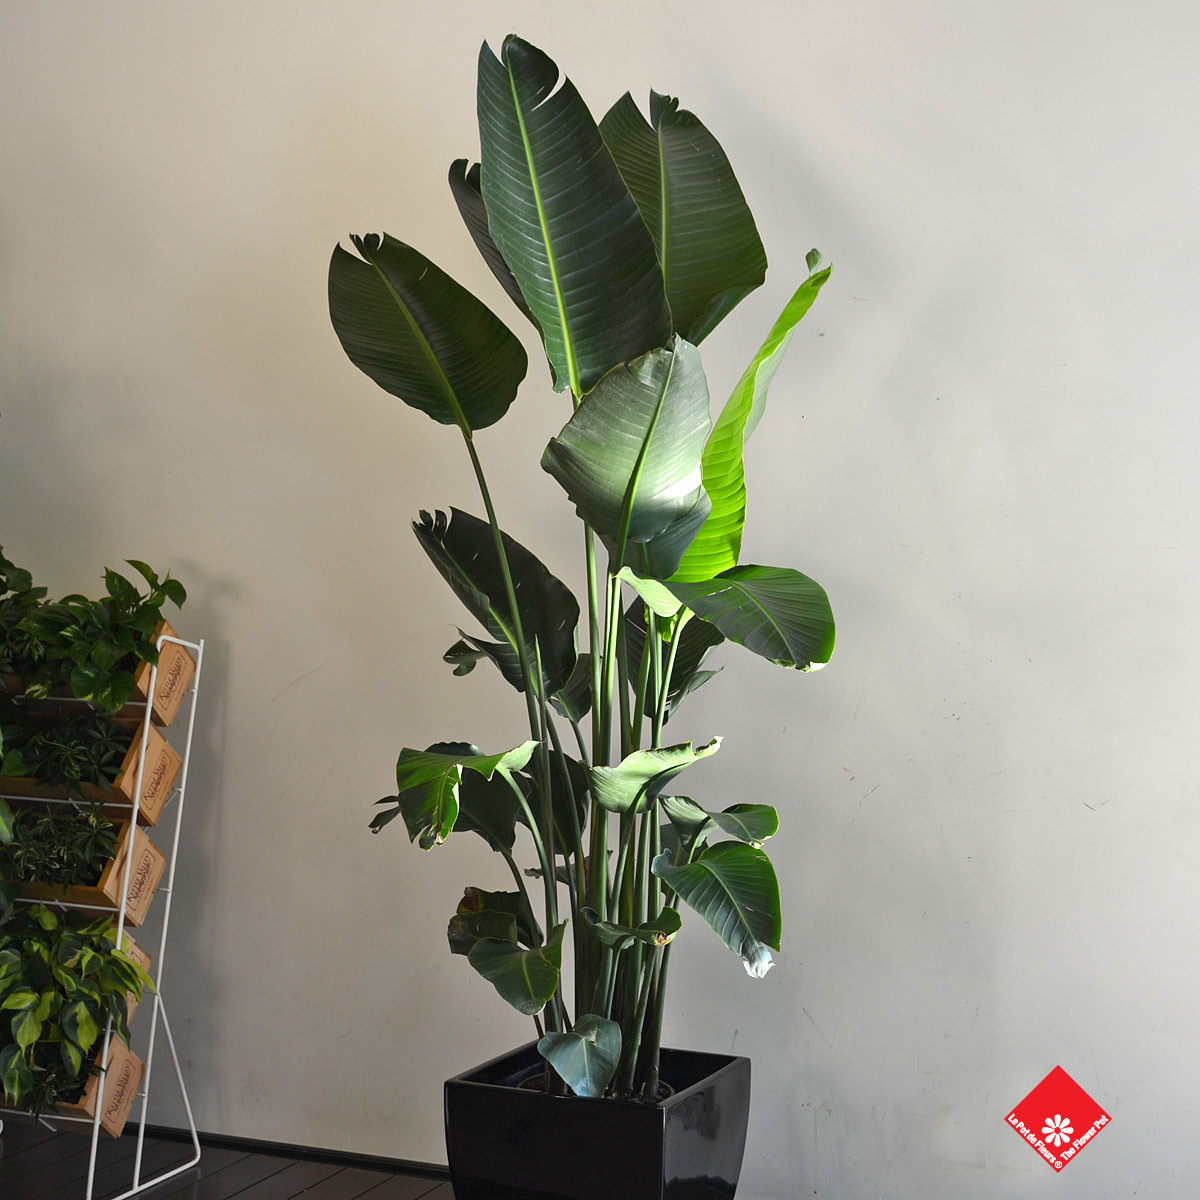 This plant's long leaves make it a designer favourite. Make your home fashionable by adding this Birds of Paradise plant to your living room décor.